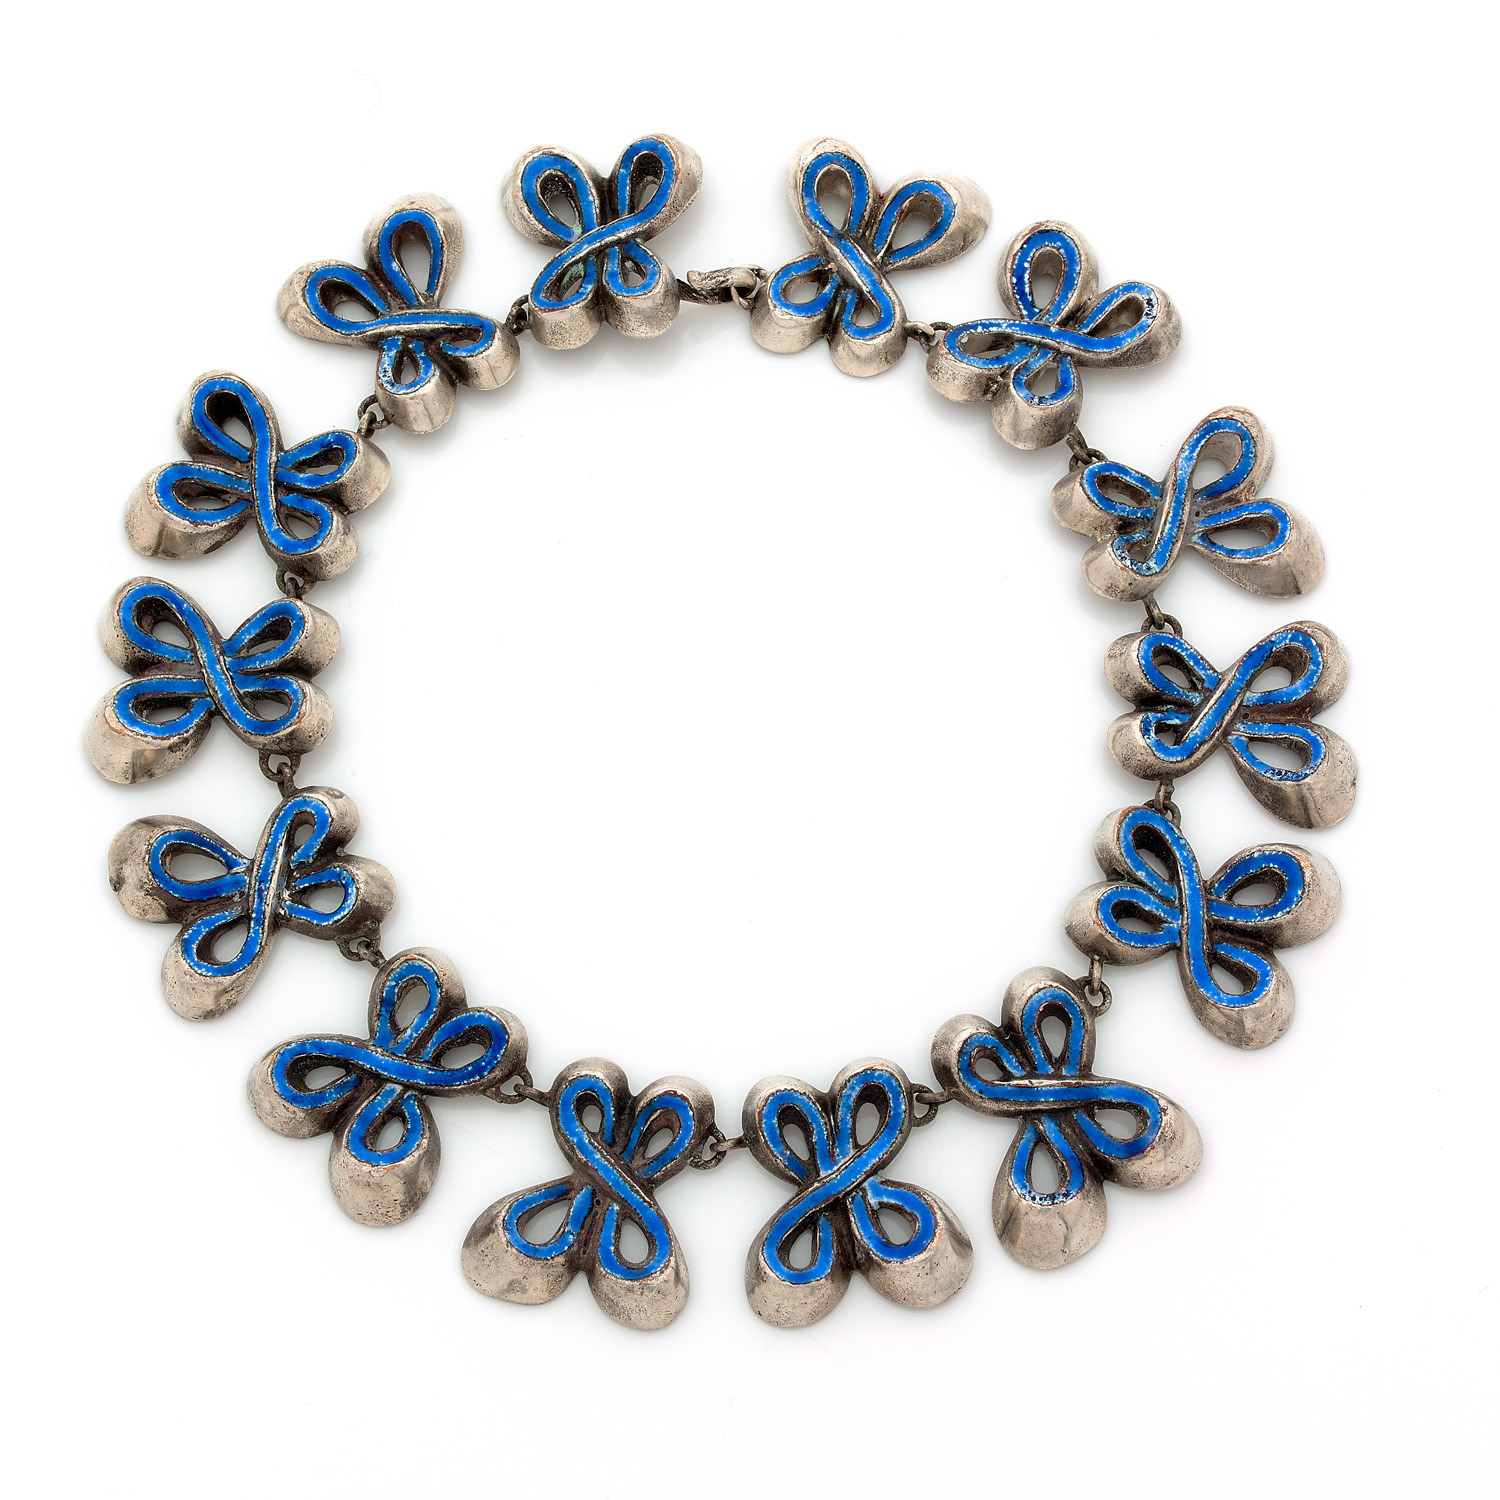 €1,560Line Vautrin (1913-1977), Nœuds necklace in silver-plated bronze and blue enamel with the monogram LV, c. 1940Paris, November 24, 20